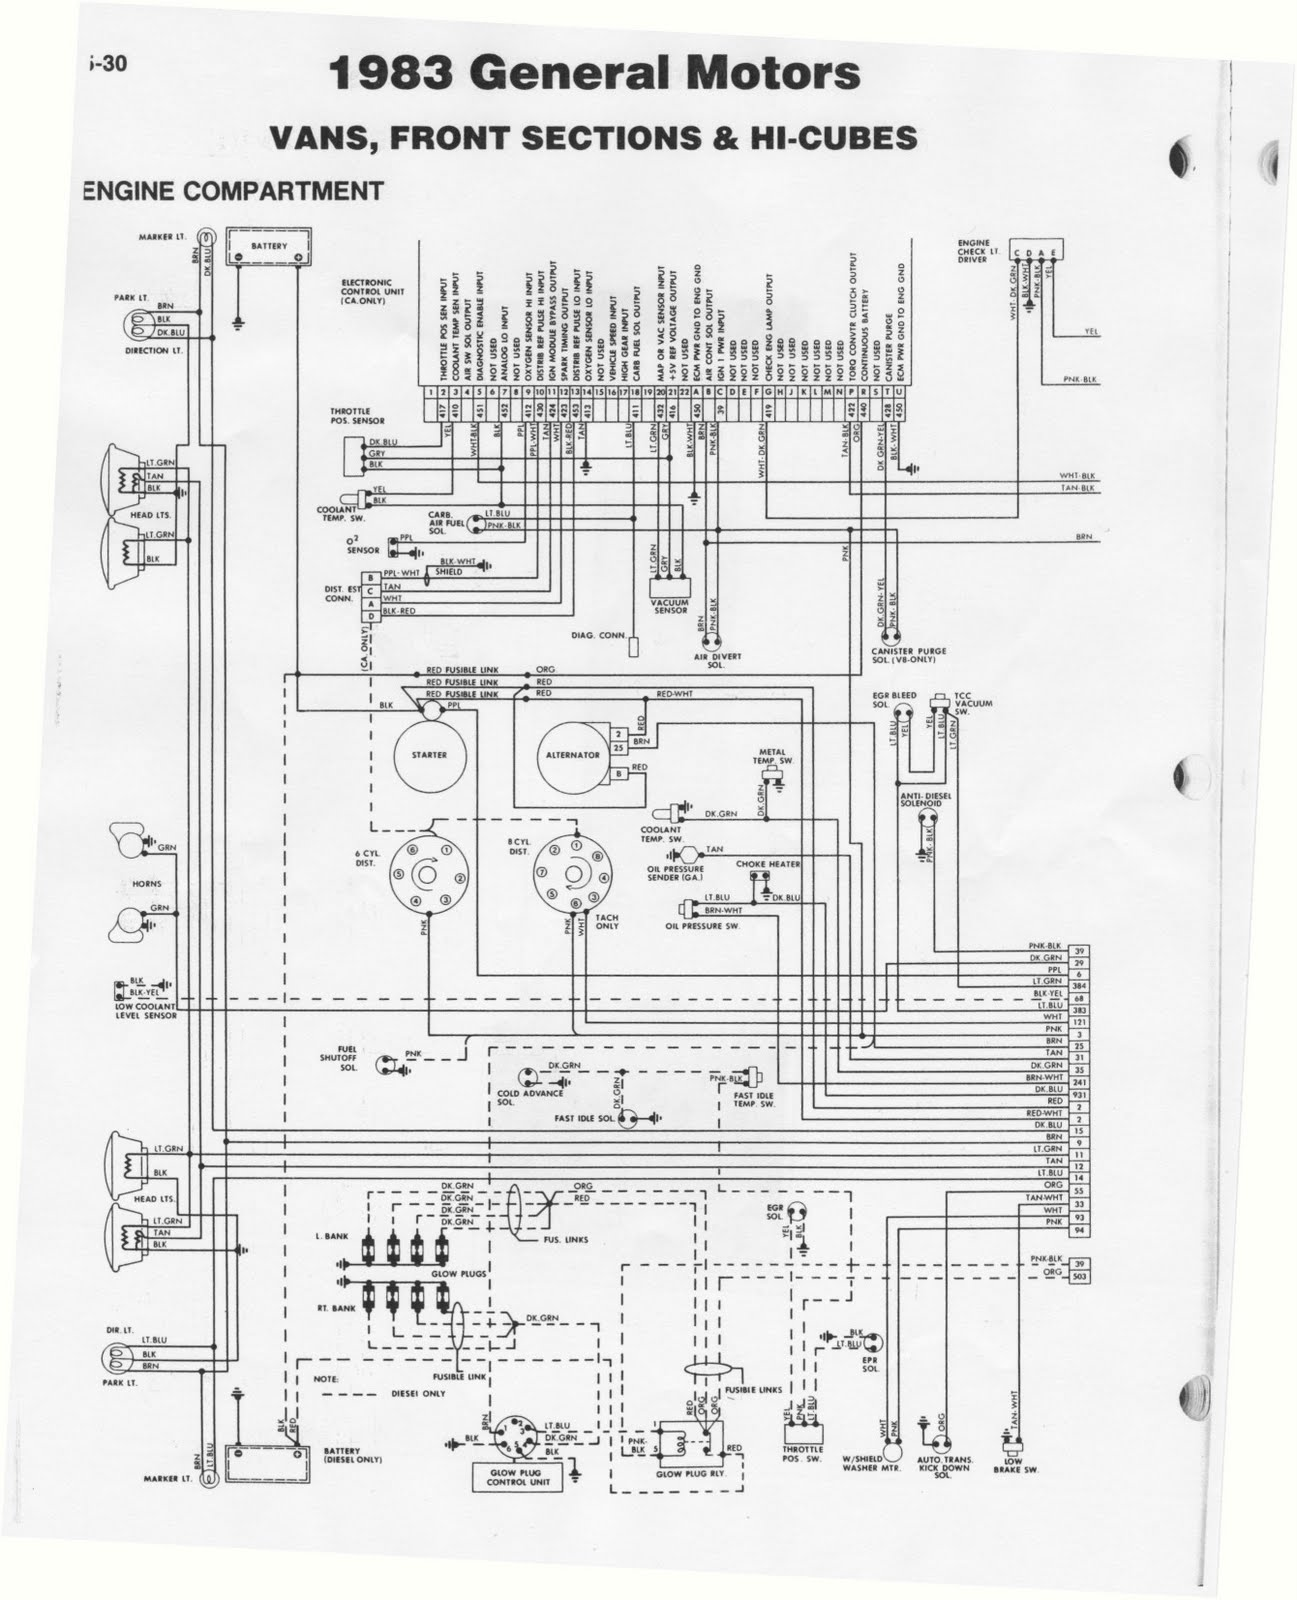 91 Bounder Wiring Diagram Library Mitsubishi Lancer Fuse Box Of 1991 Fleetwood Rv Coronado Todaysdiscovery Simple Diagrams